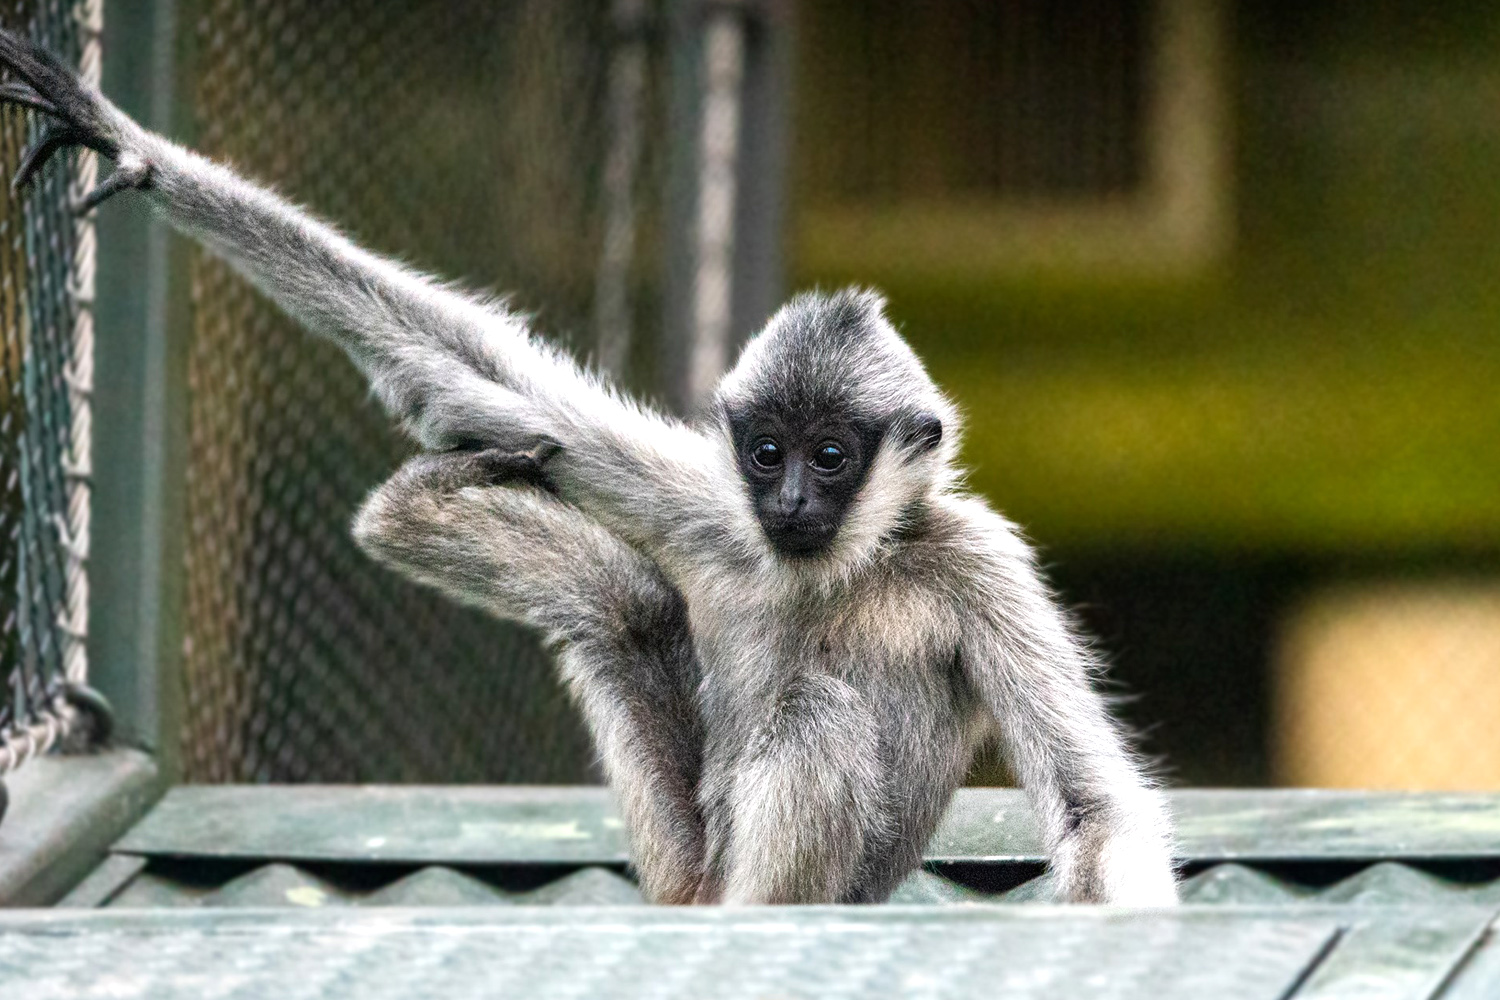 Leilani, a one-and-a-half-year-old white-cheeked gibbon